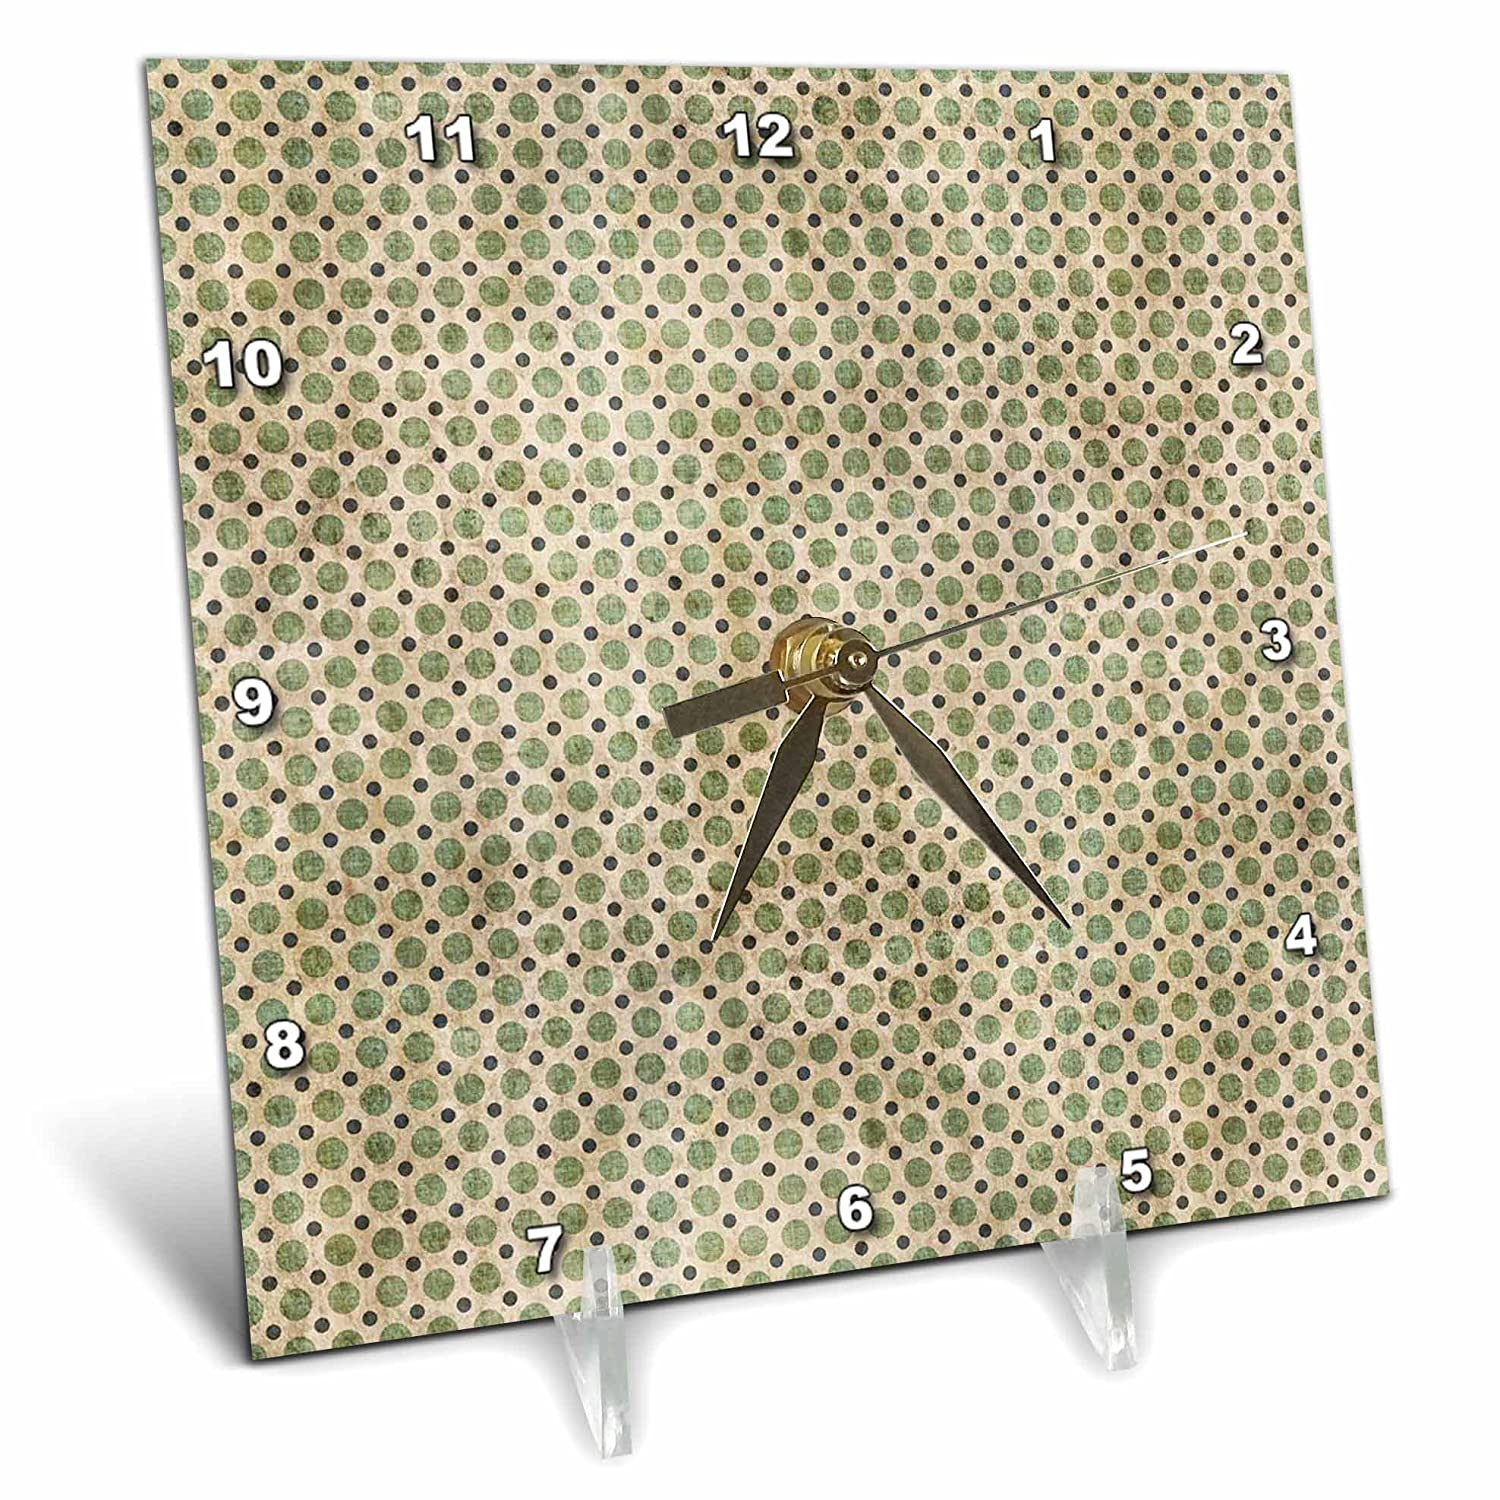 6 by 6-Inch 3dRose dc/_65972/_1 Green Grunge Polka Dots on a Beige Background with Blue Mini-Dots-Desk Clock